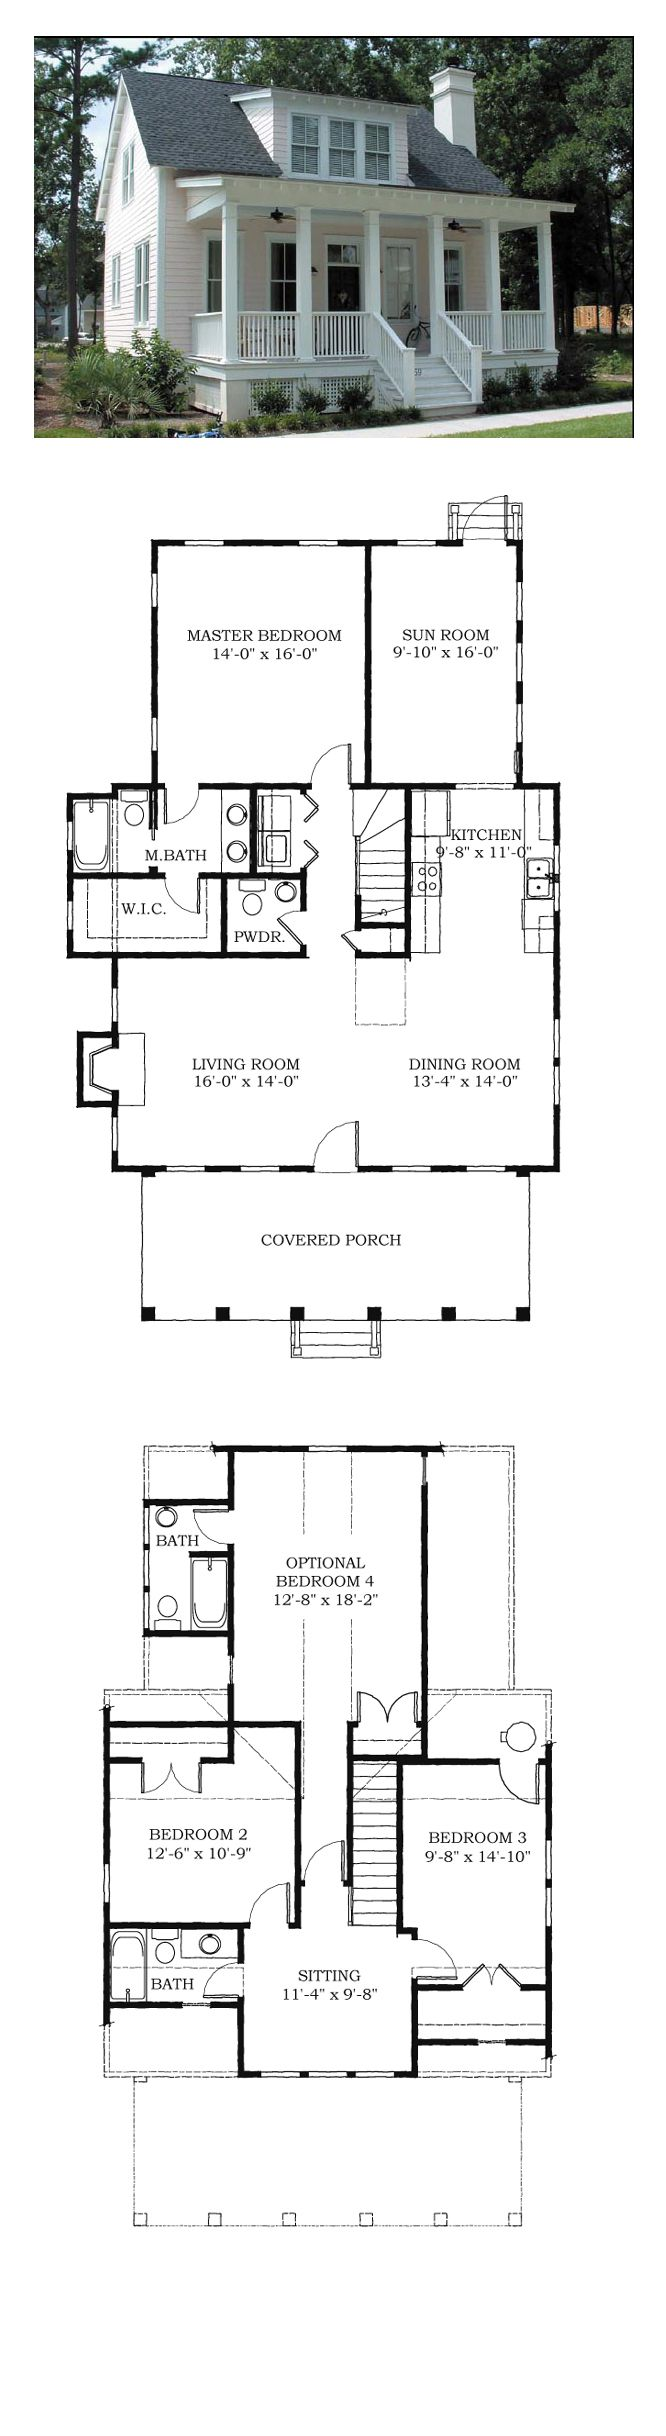 best 20 house plans ideas on pinterest craftsman home plans cool house plan id chp 38703 total living area 1783 sq